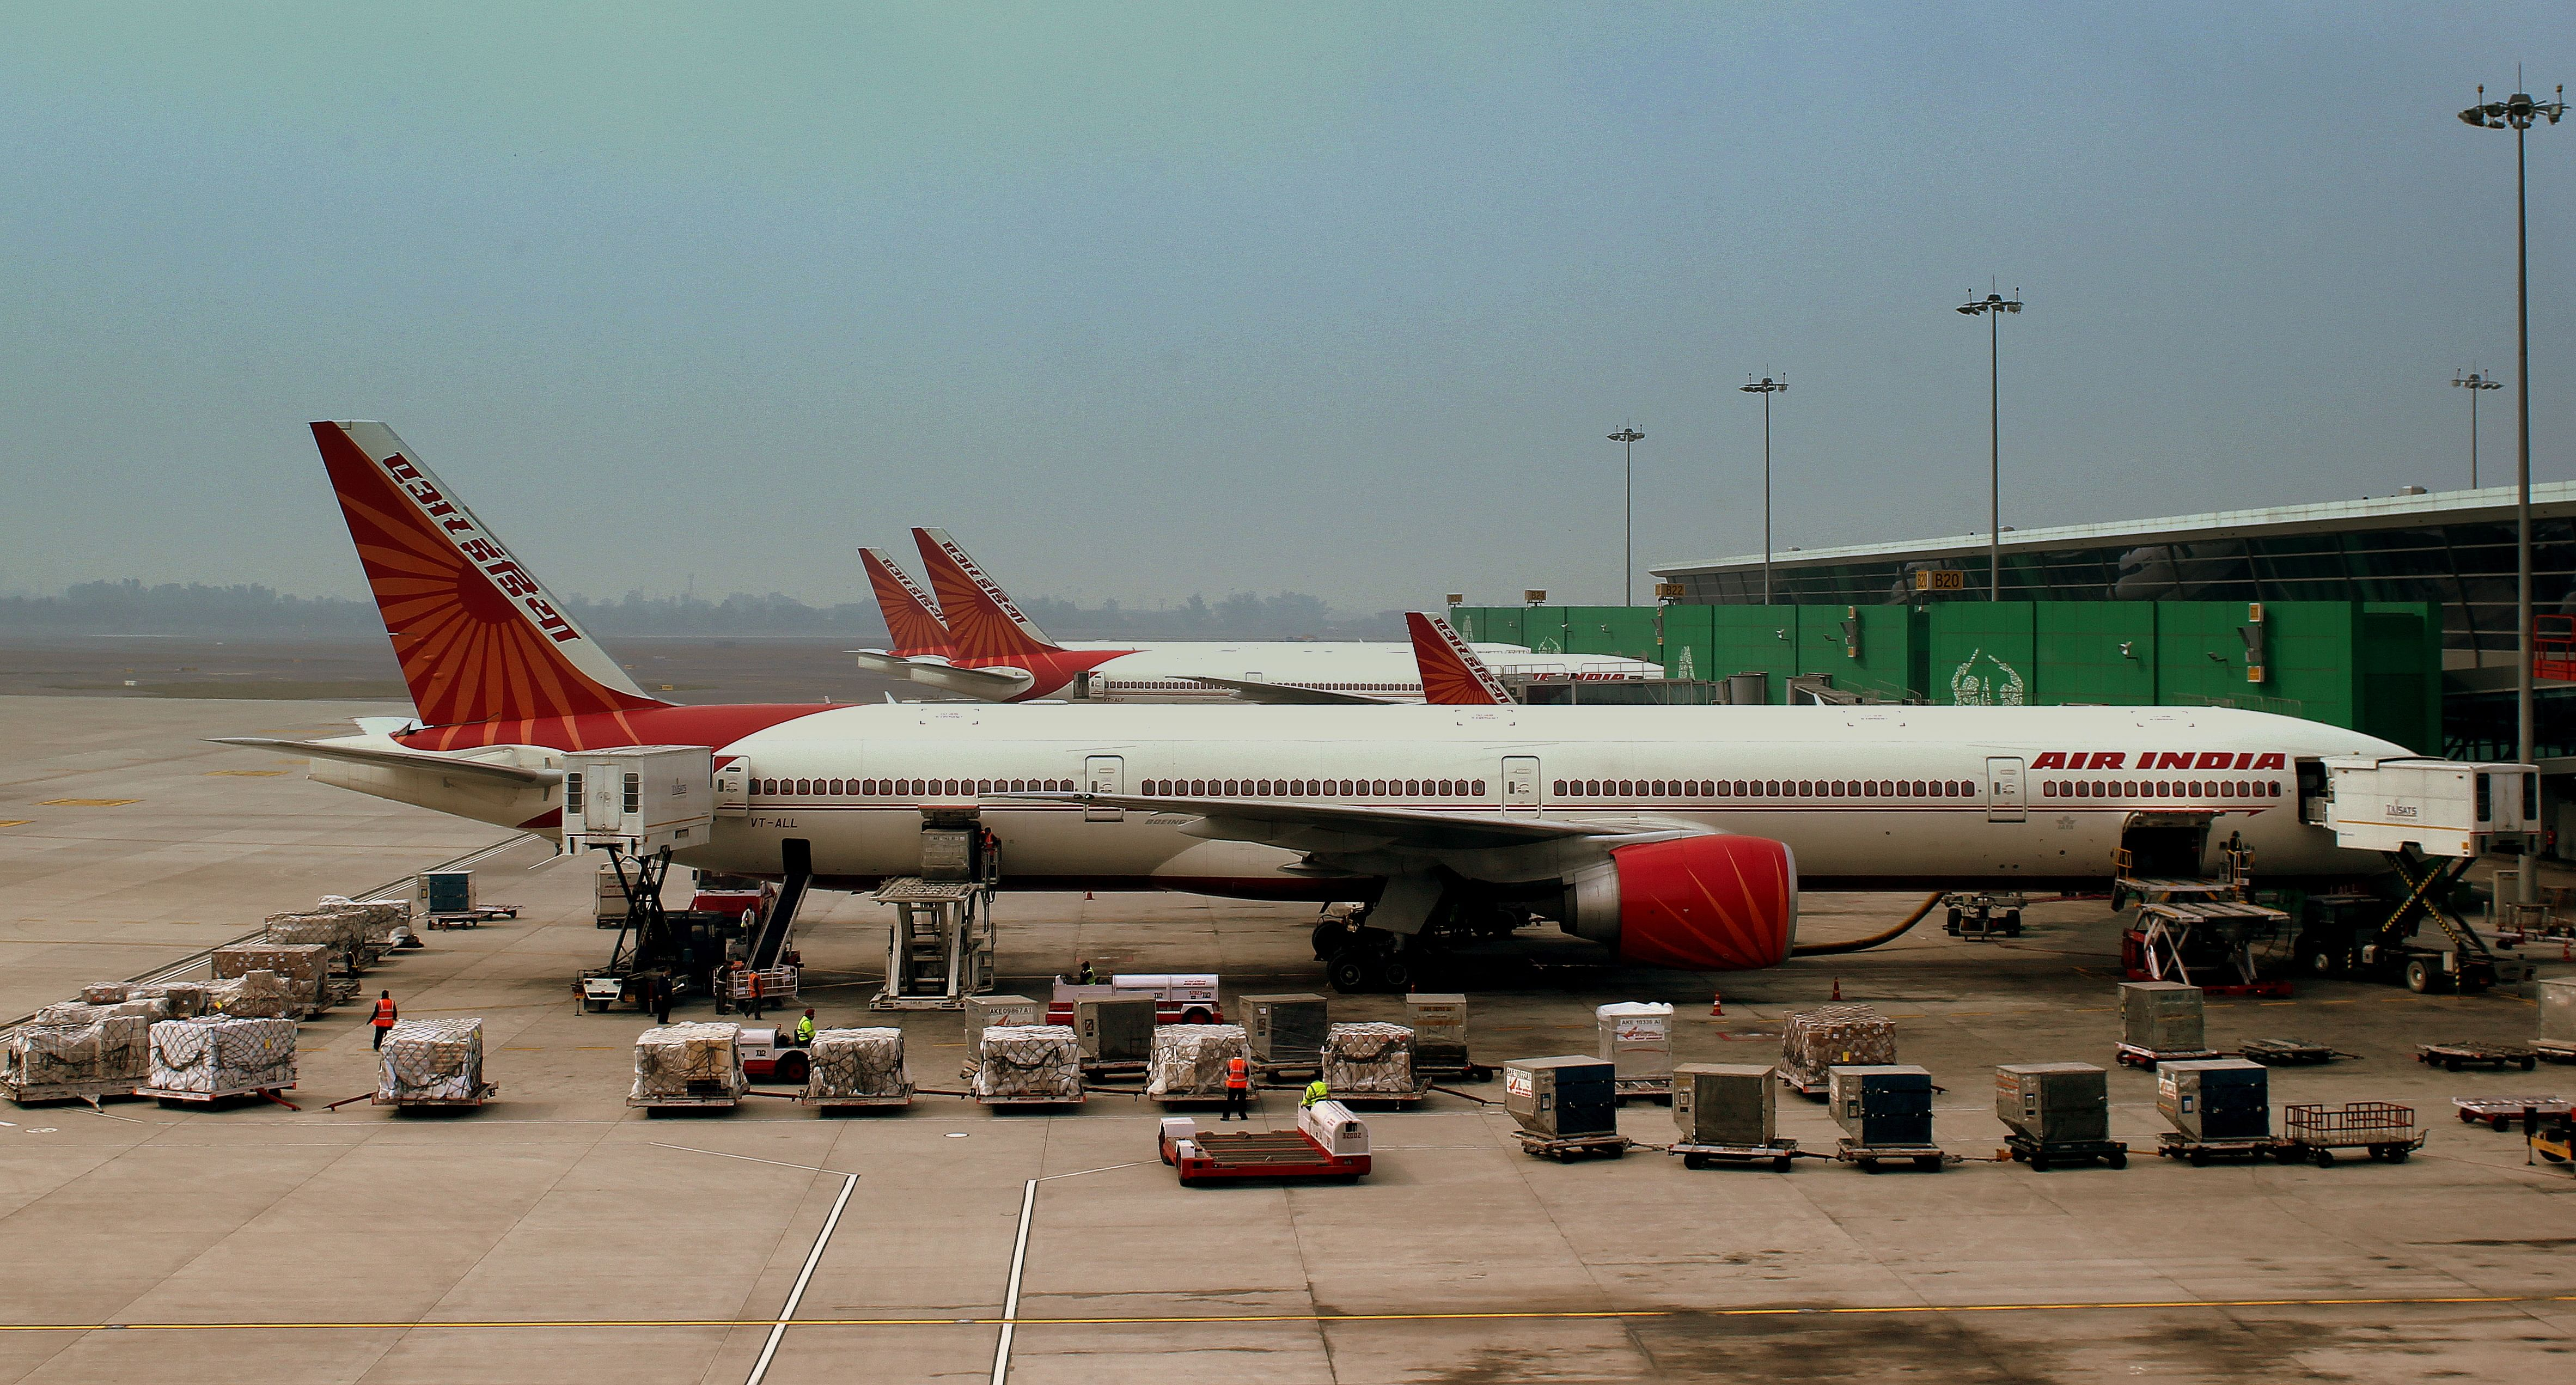 Air_India_A320_and_Boeing_777-300ER,S_at_Indira_Gandhi_Airport_Delhi_India_February_2013